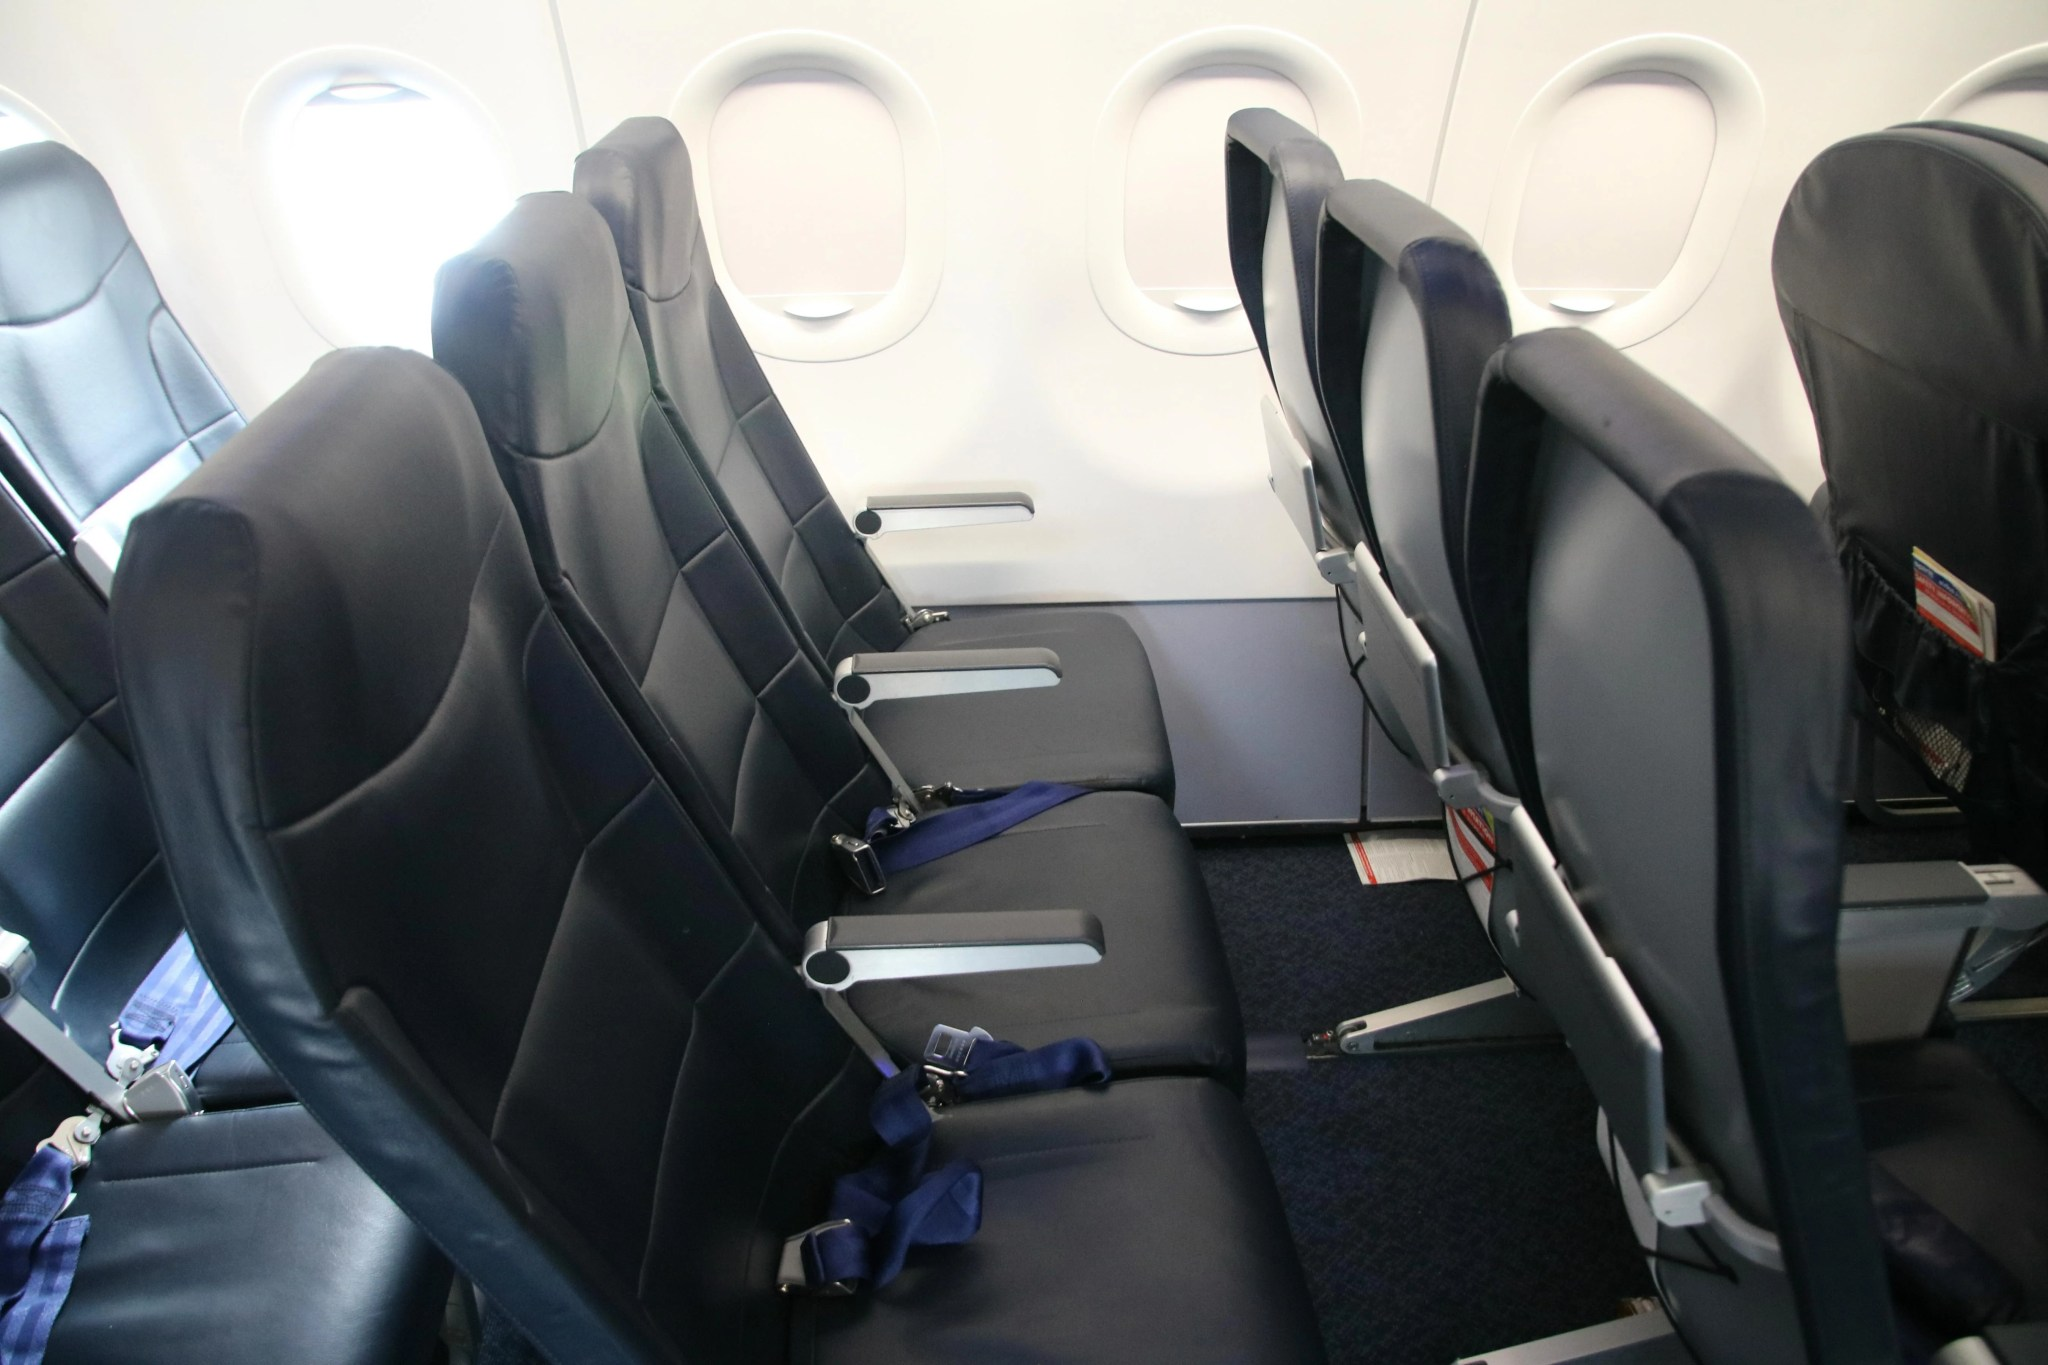 Enjoyable Review Spirit Airlines A321 Big Front Seat Ord Oak Uwap Interior Chair Design Uwaporg